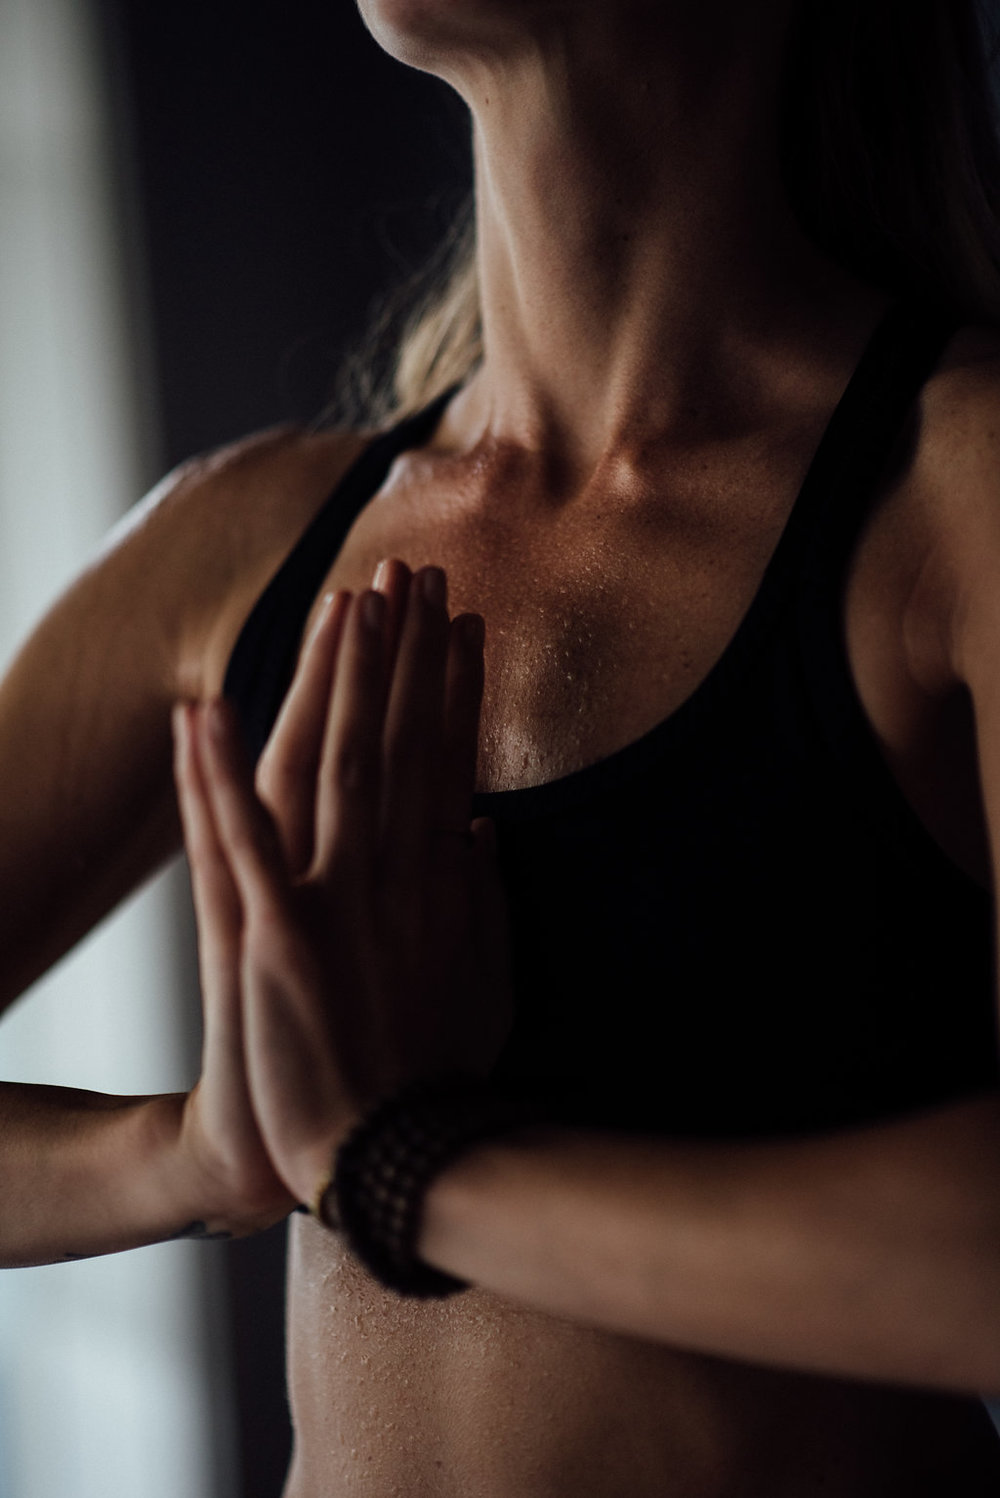 sweat beads on yoga student during hot yoga